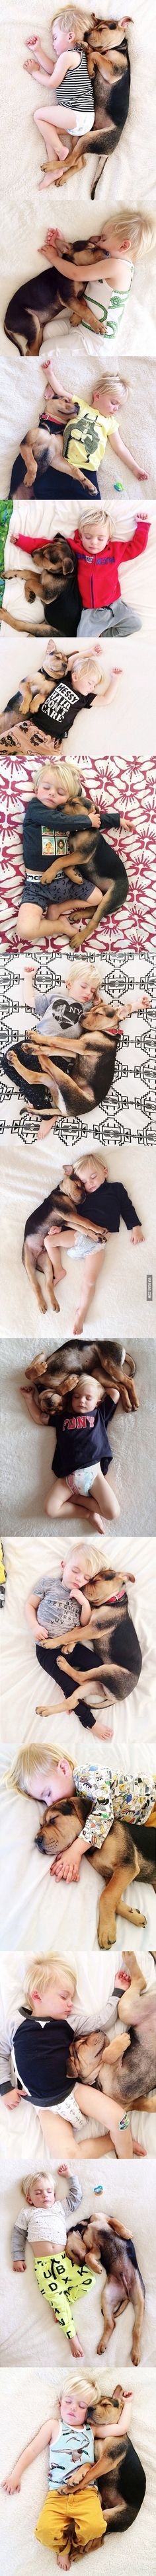 A mother photographs her son and his puppy taking a nap everyday. I would love to see more pictures of this precious boy and his dog  as they grow together.  These pictures are beautiful. Thank you for sharing them. <3 XO